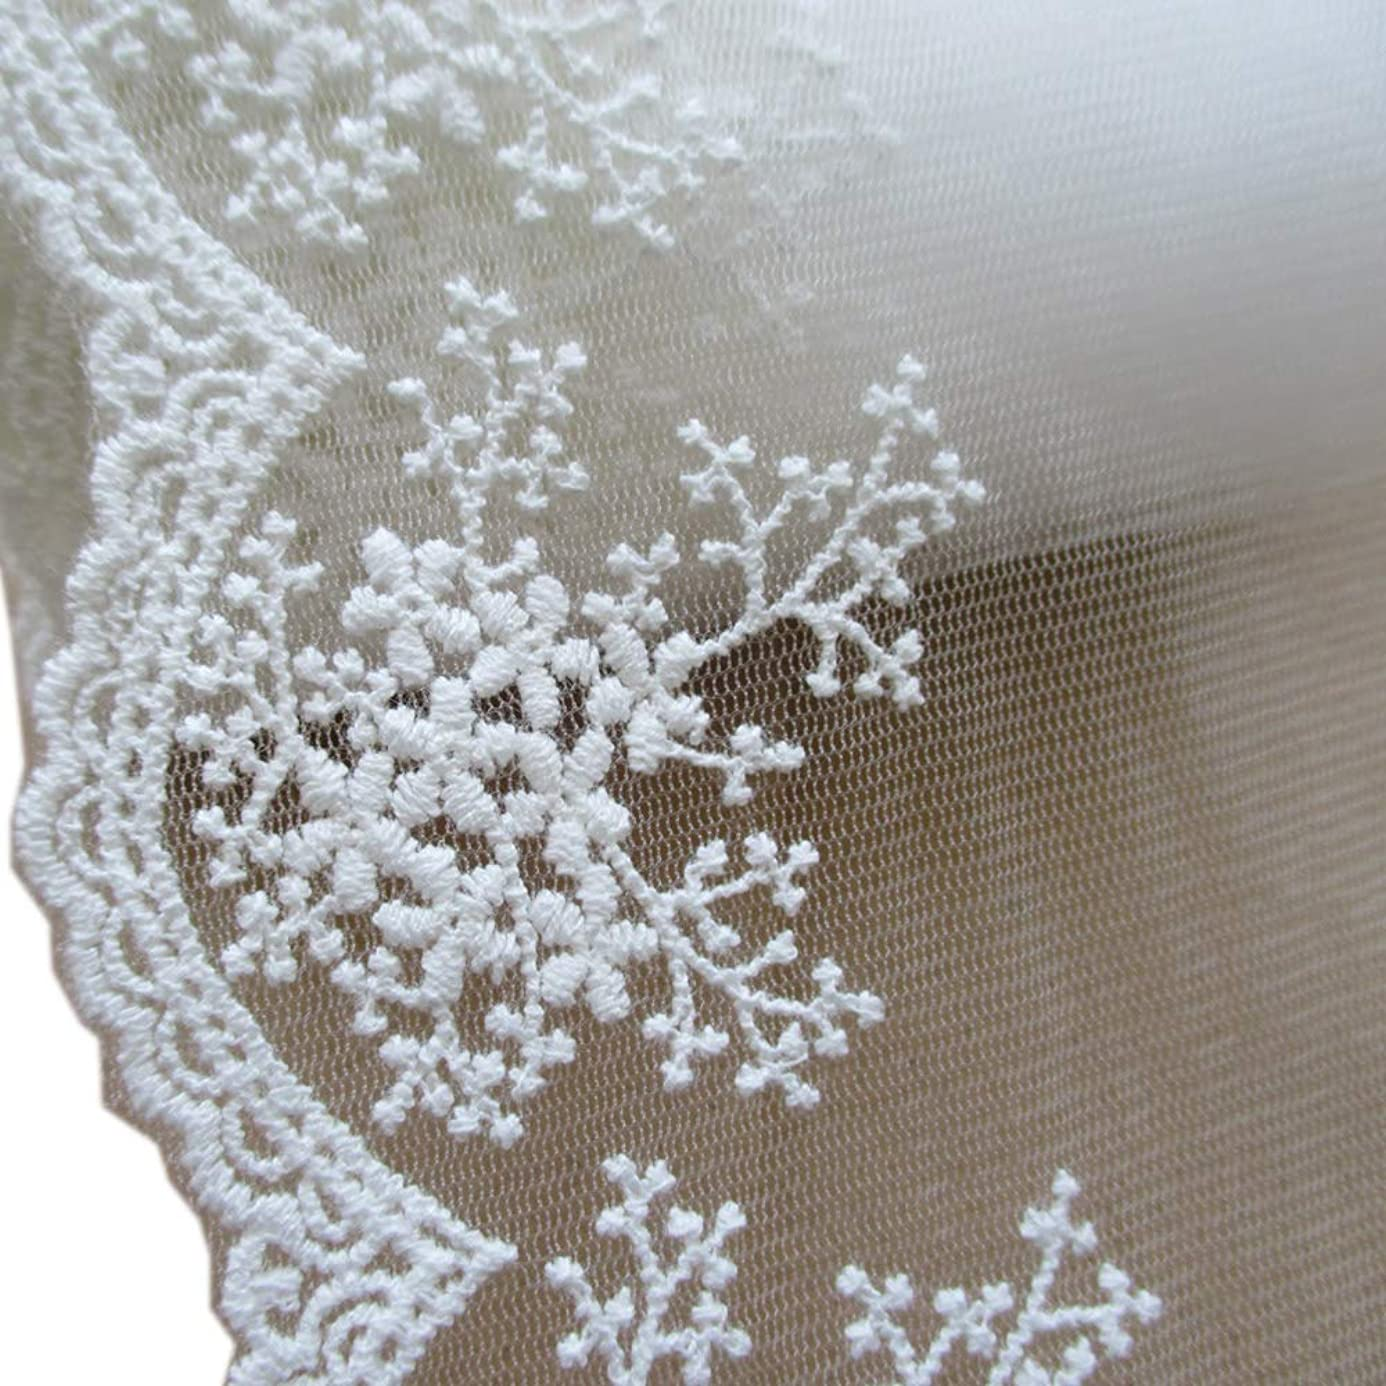 3 Yards 4-1/4 Inches Wide Cotton Embroidered Lace Trimming For Garment And DIY Craft Supply In White kdo9055005